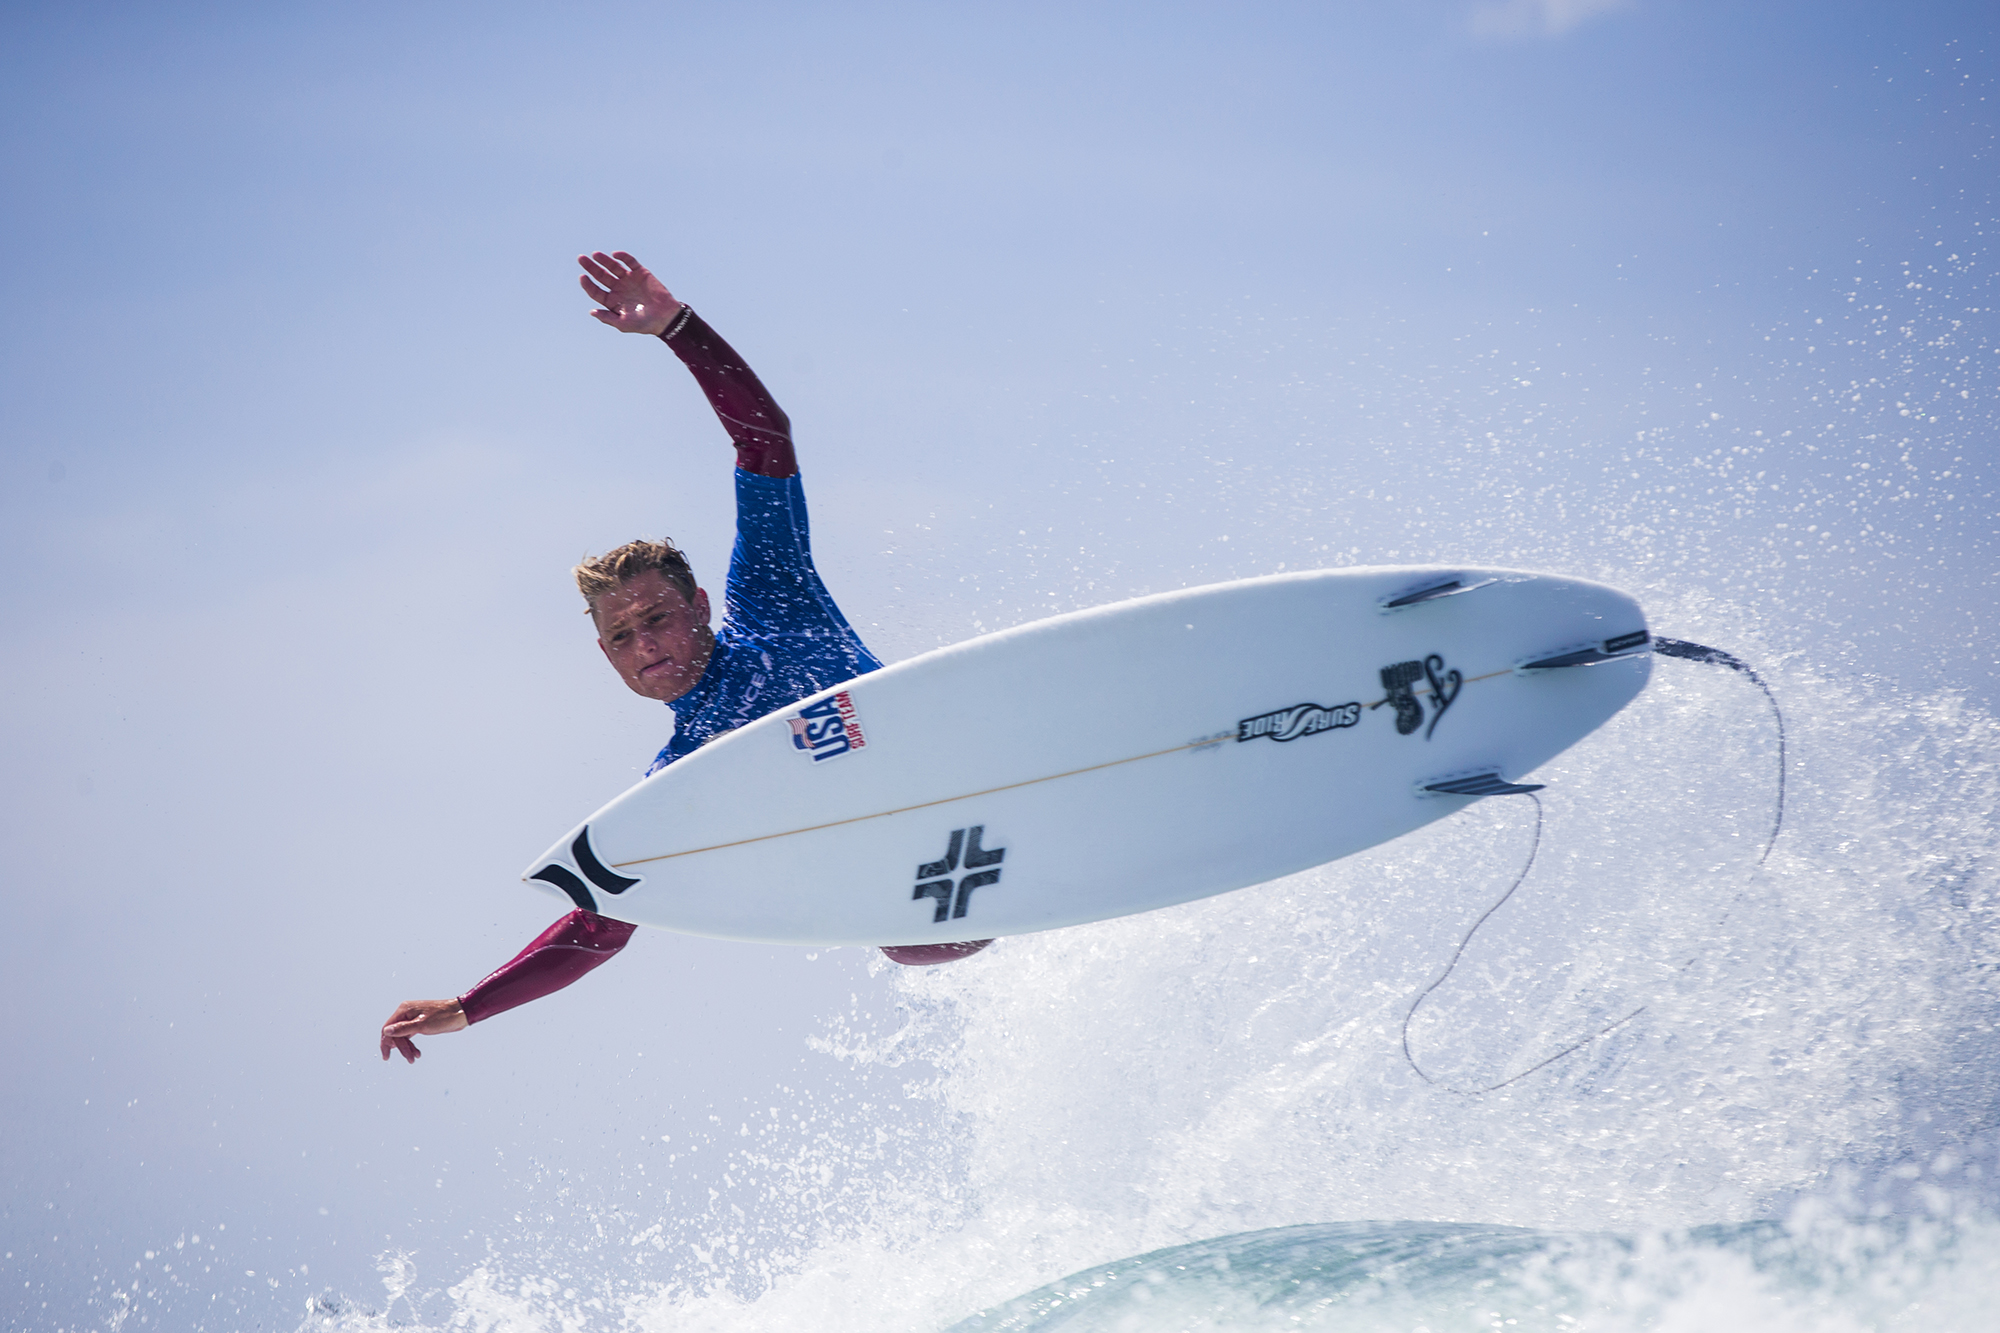 jordy-collins-united-states-ISA-world-surfing-games-2017-biarritz-guillaume-arrieta-we-creative